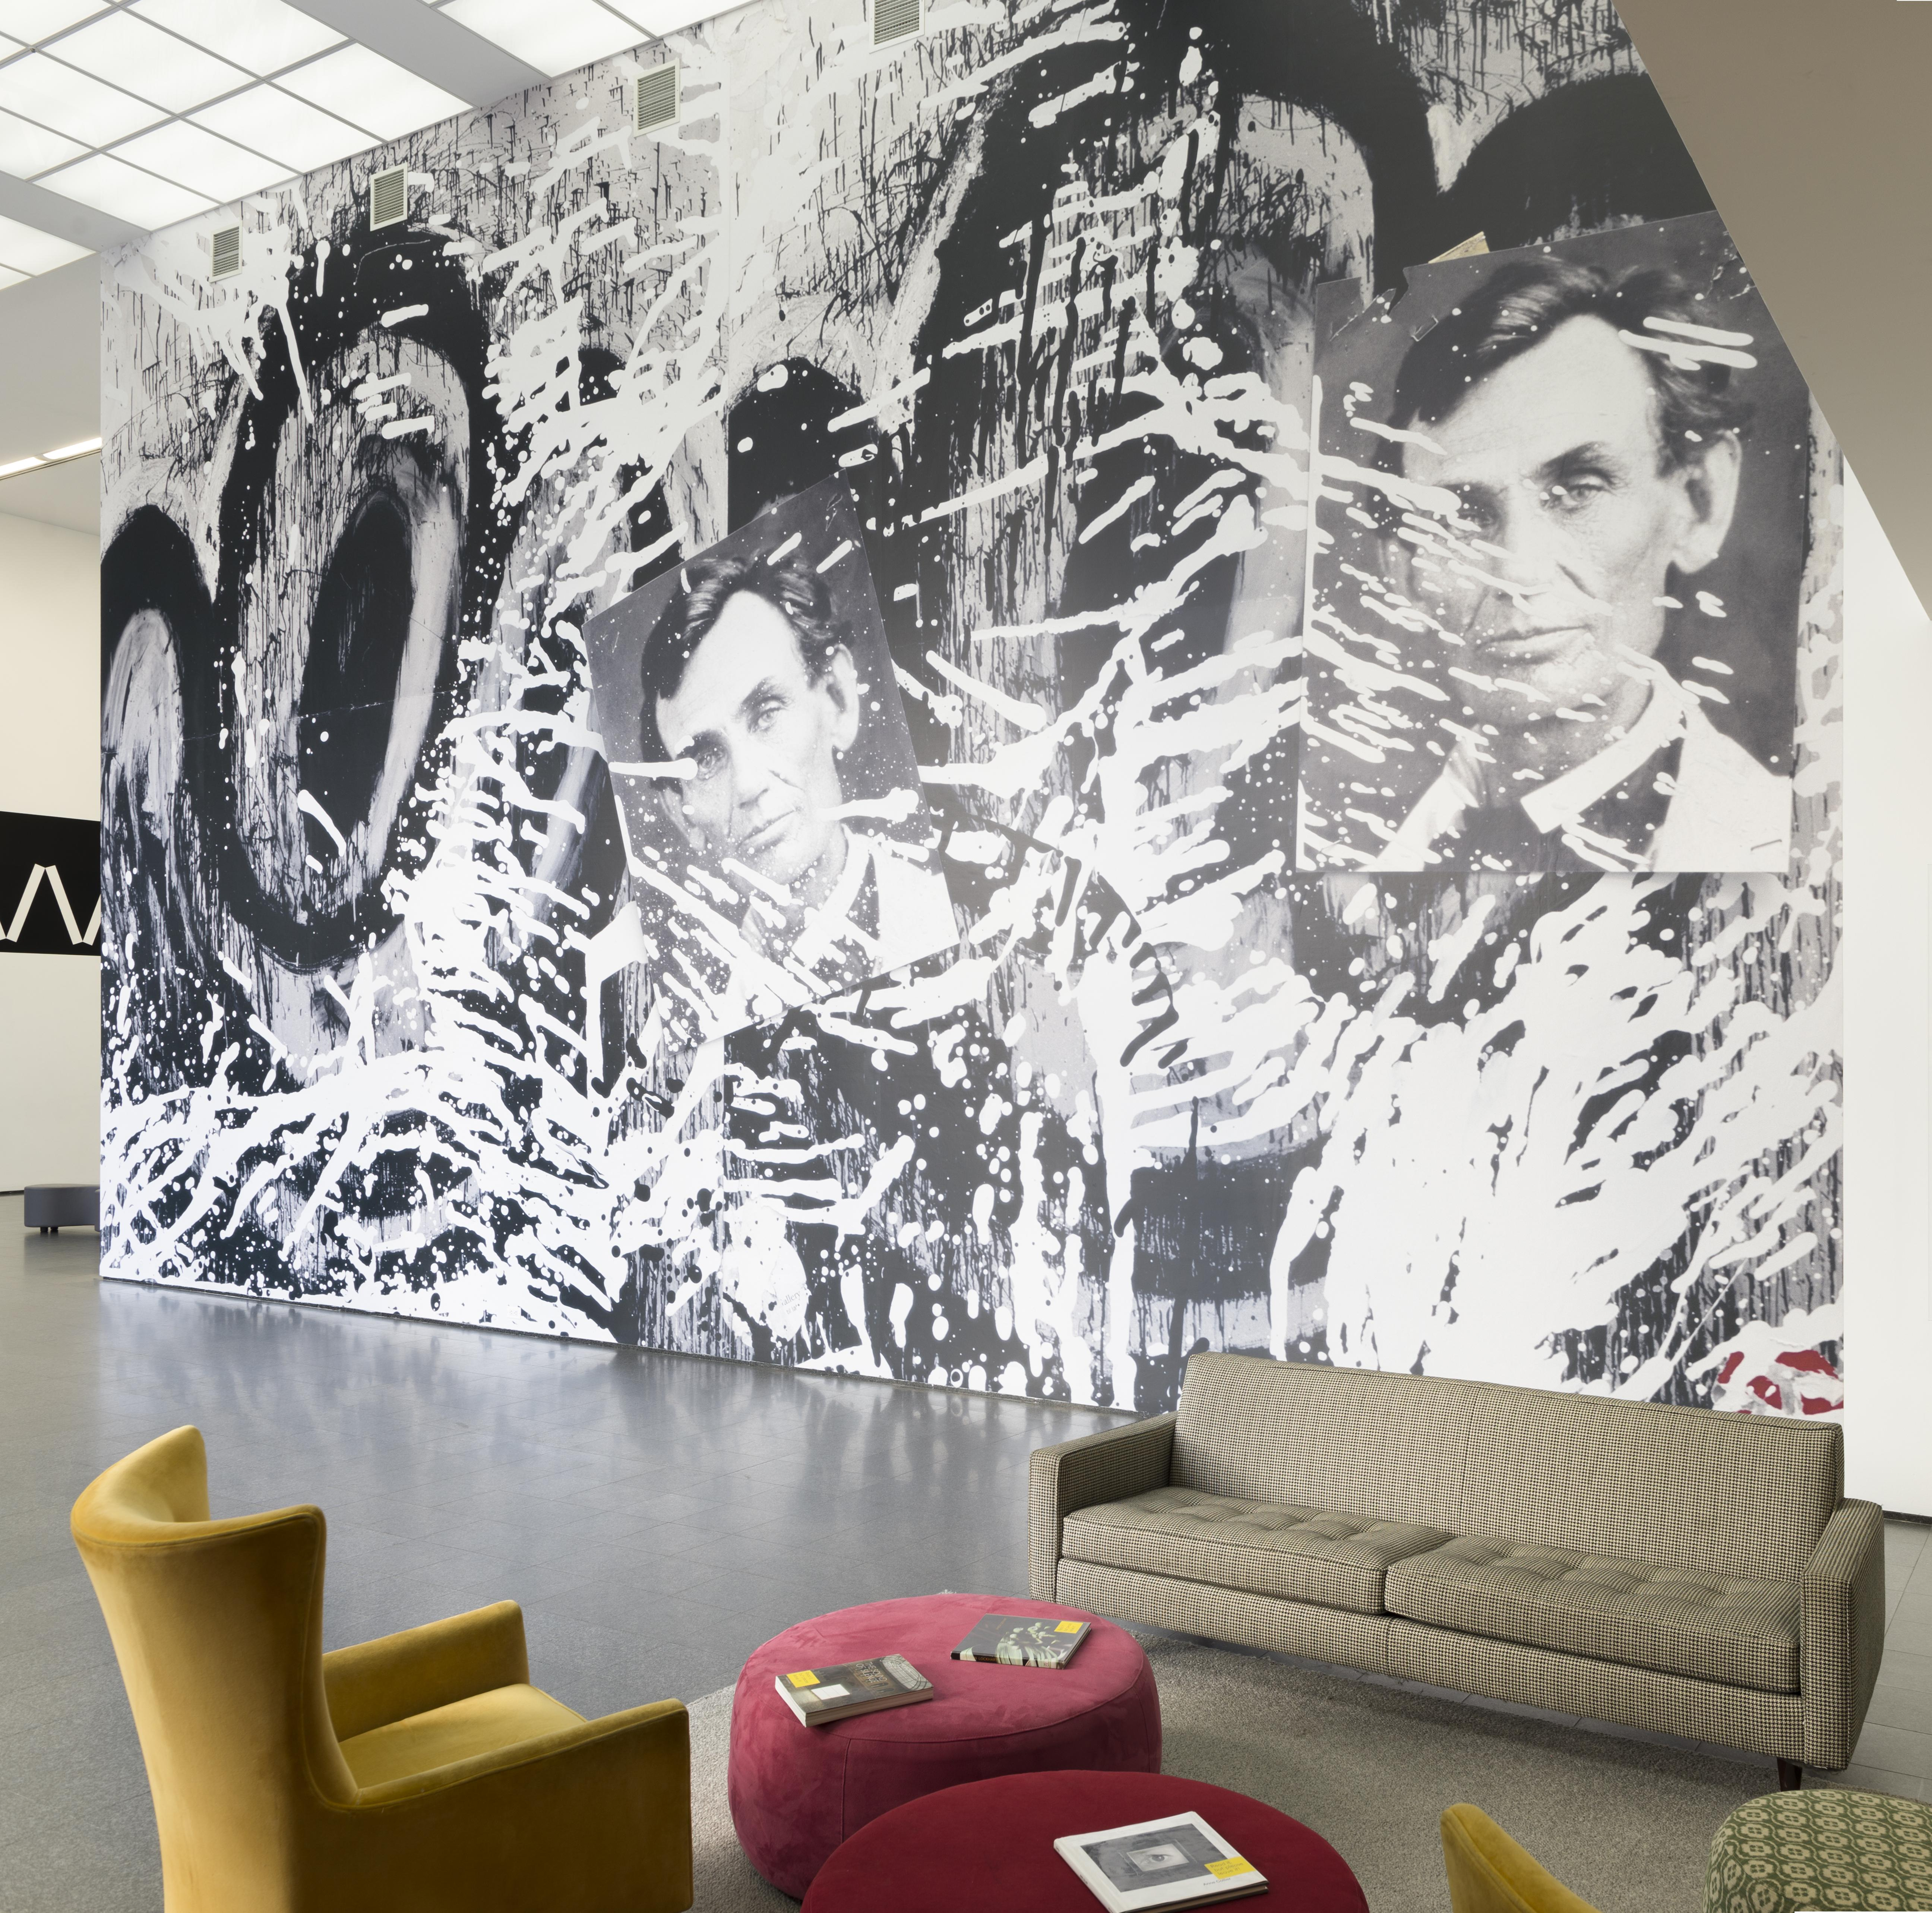 An image of a huge photographic wallpaper mural in the MCA's second floor lobby featuring cartoonish eyes, two photographs of Abraham Lincoln, and splatters of black and white paint. A setting of living room furniture is in the foreground of the image.